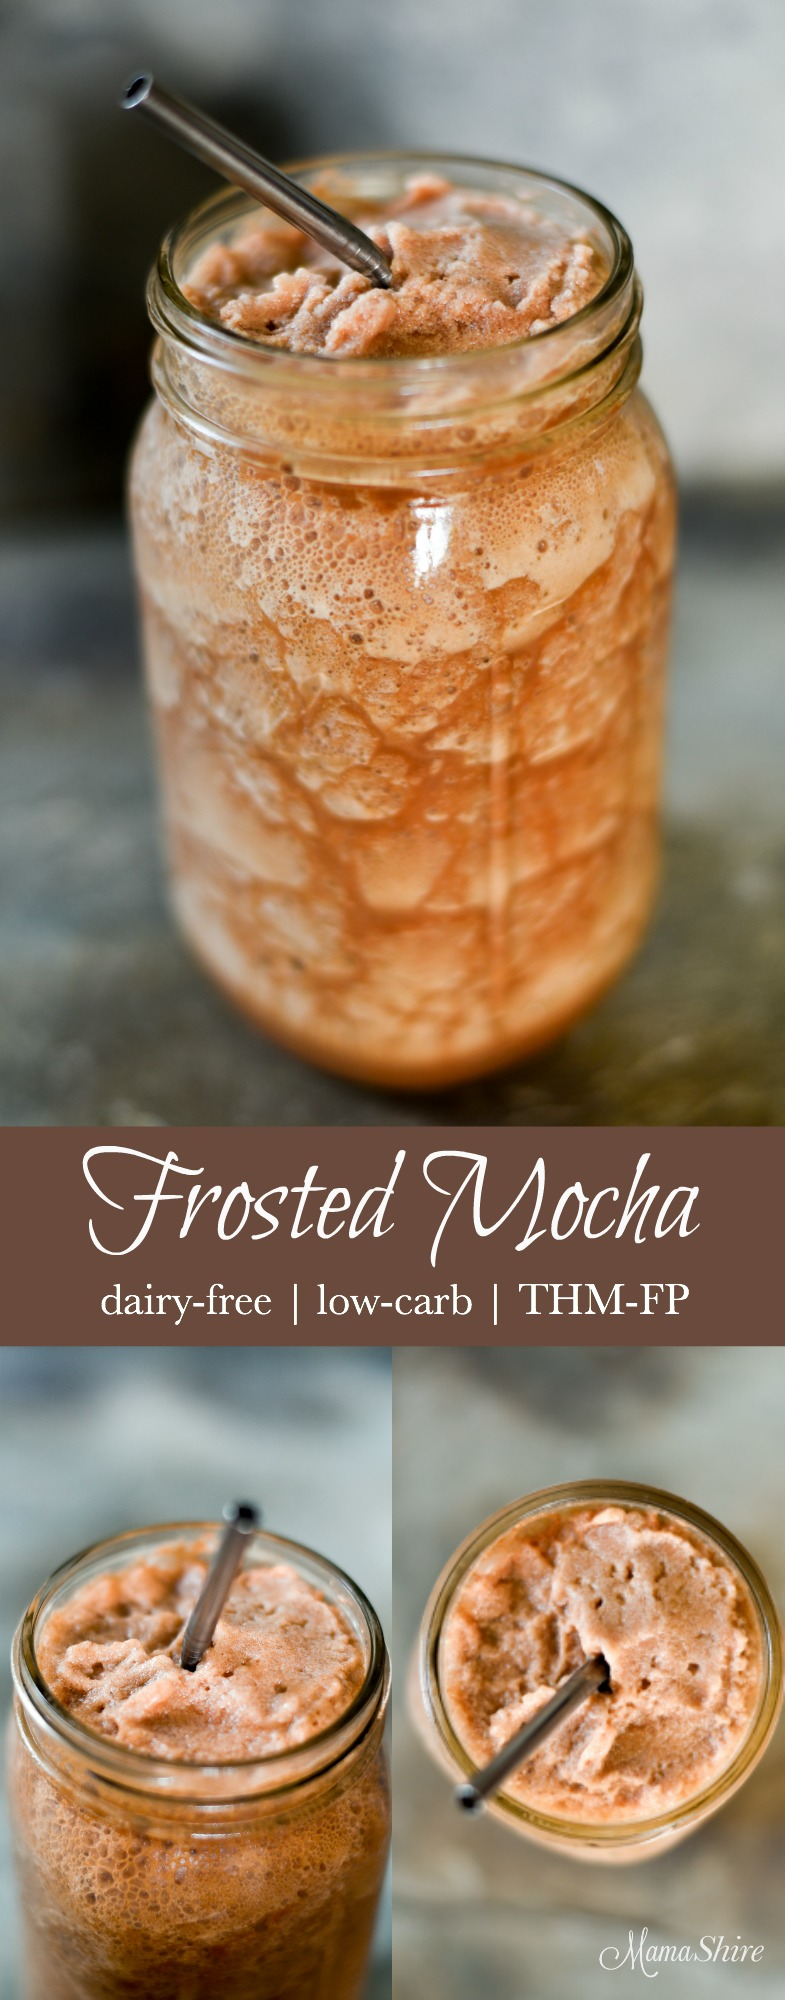 Frosted Mocha - Dairy-free, Sugar-free, Low-Carb, THM-FP